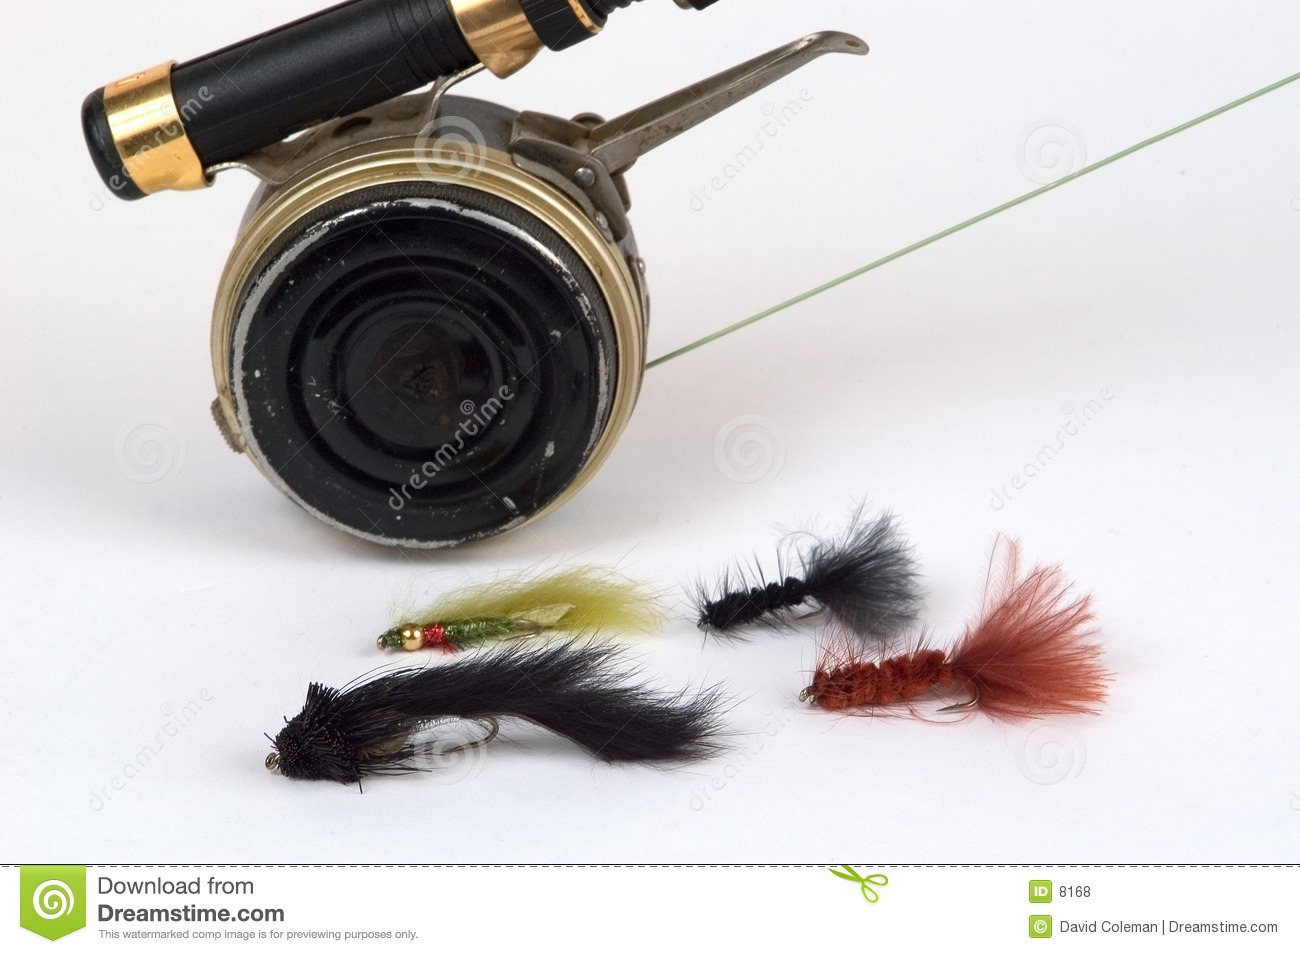 Fly rod, reel and flies